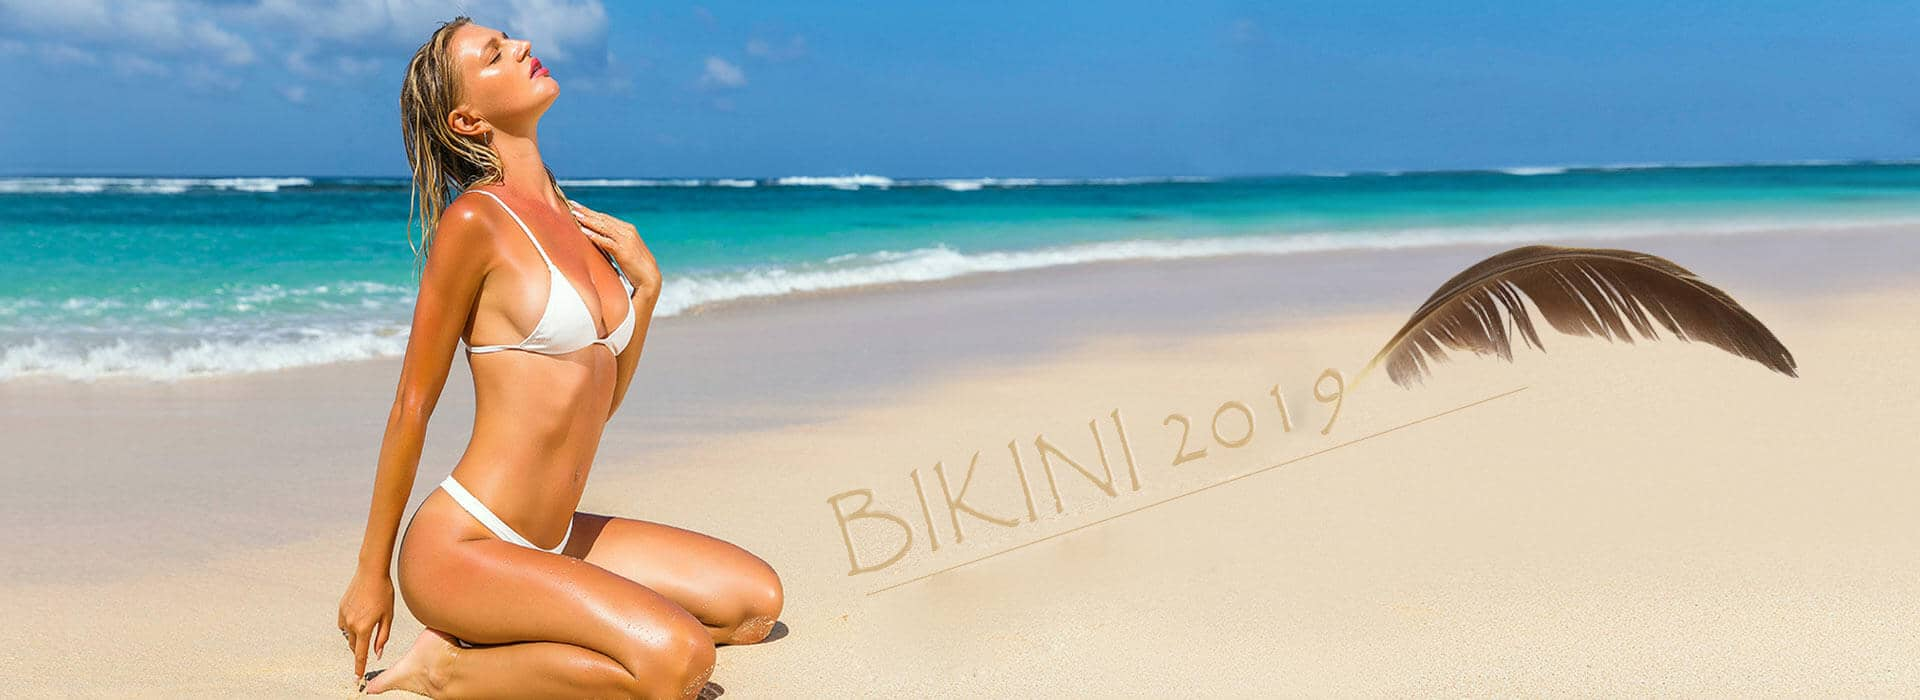 cheap bikini sets 2019